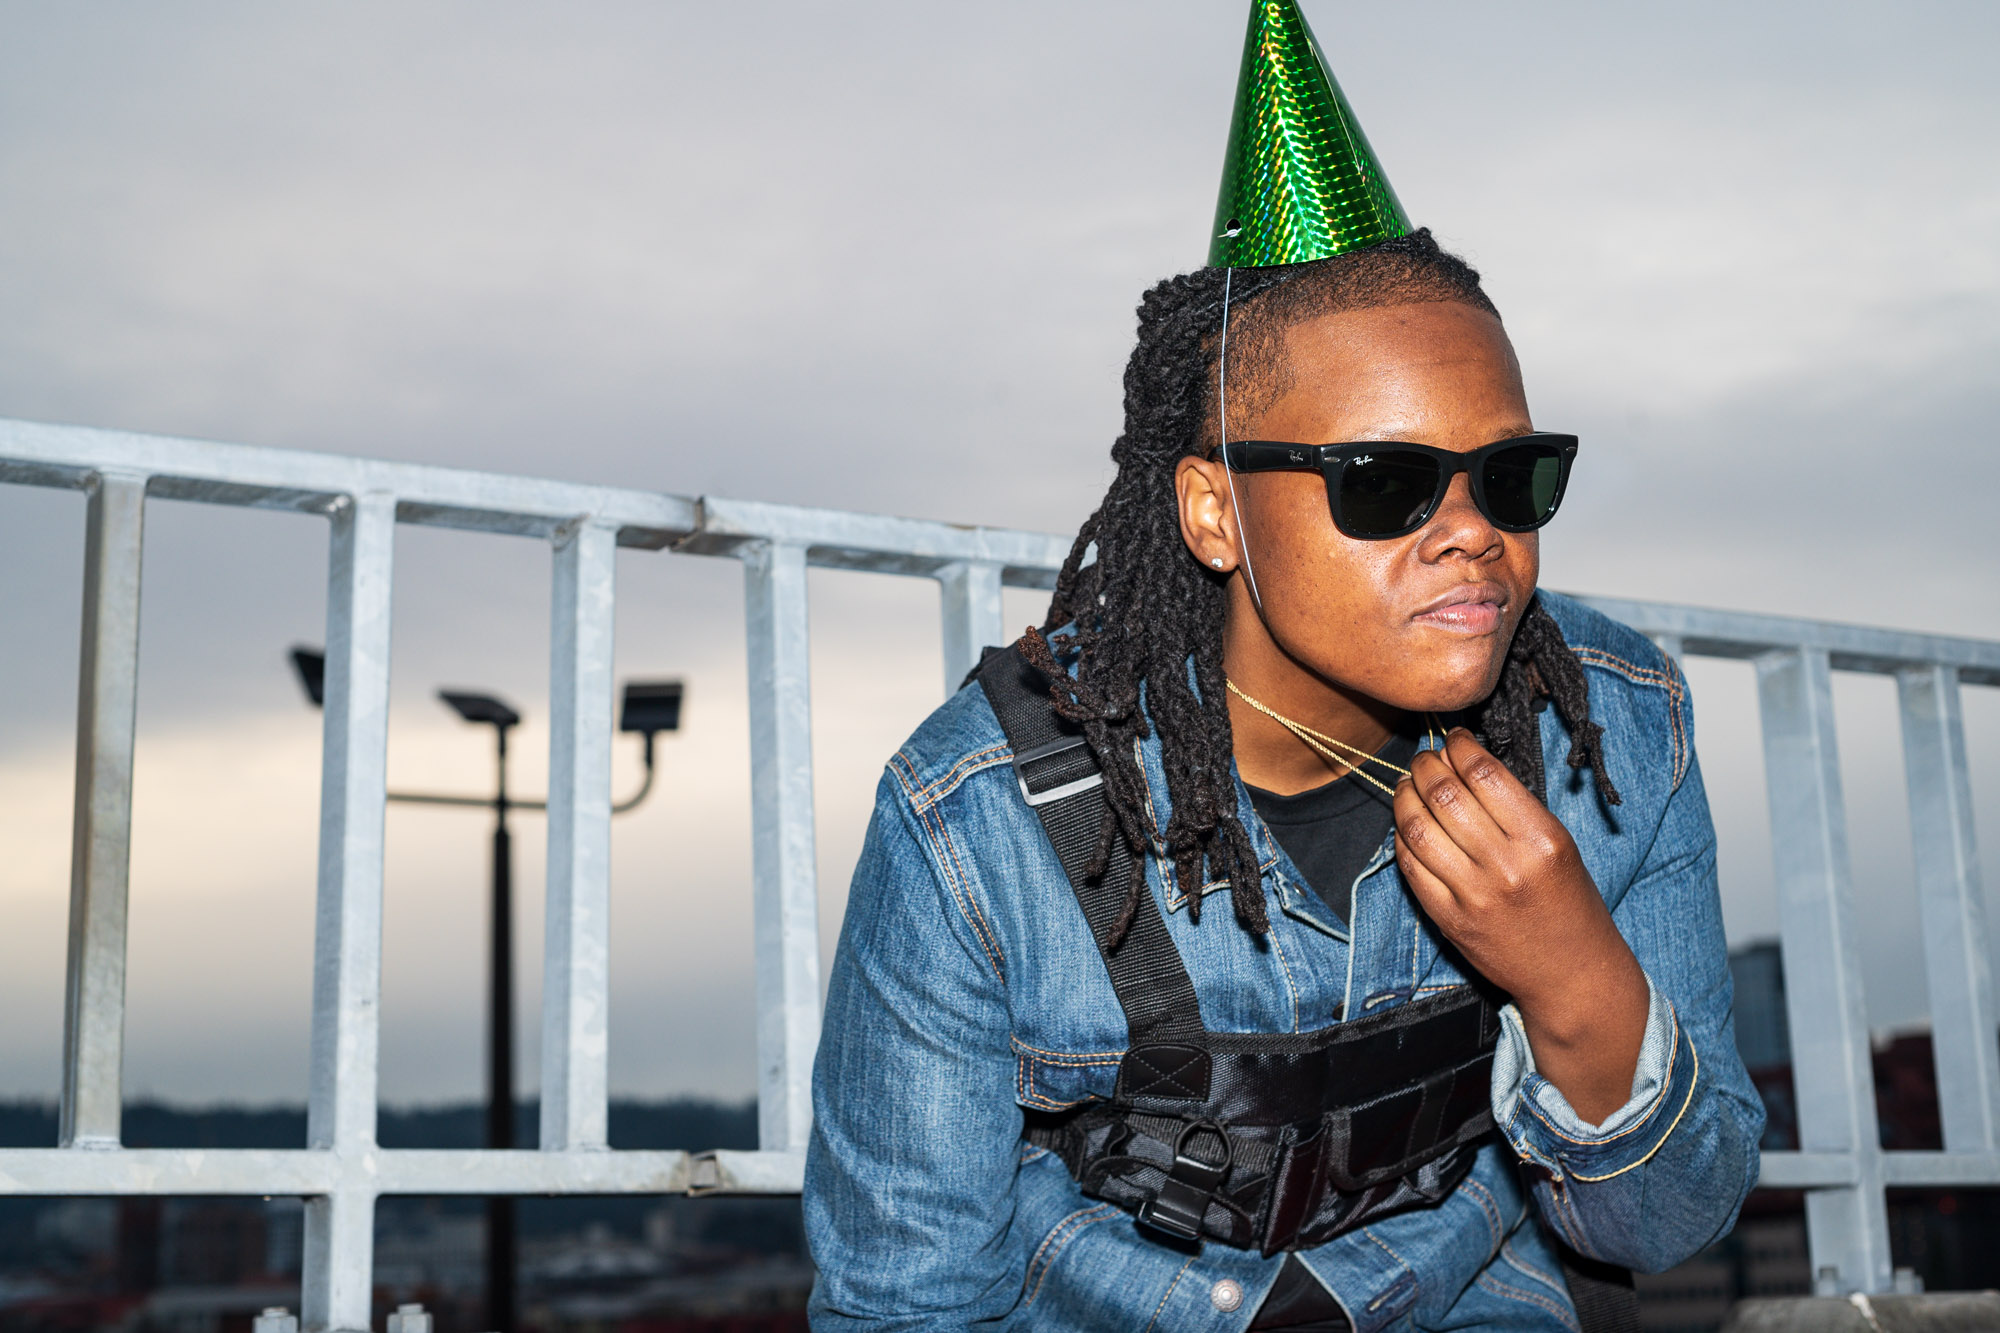 a musician poses against a silver barrier while wearing sunglasses and a green party hat